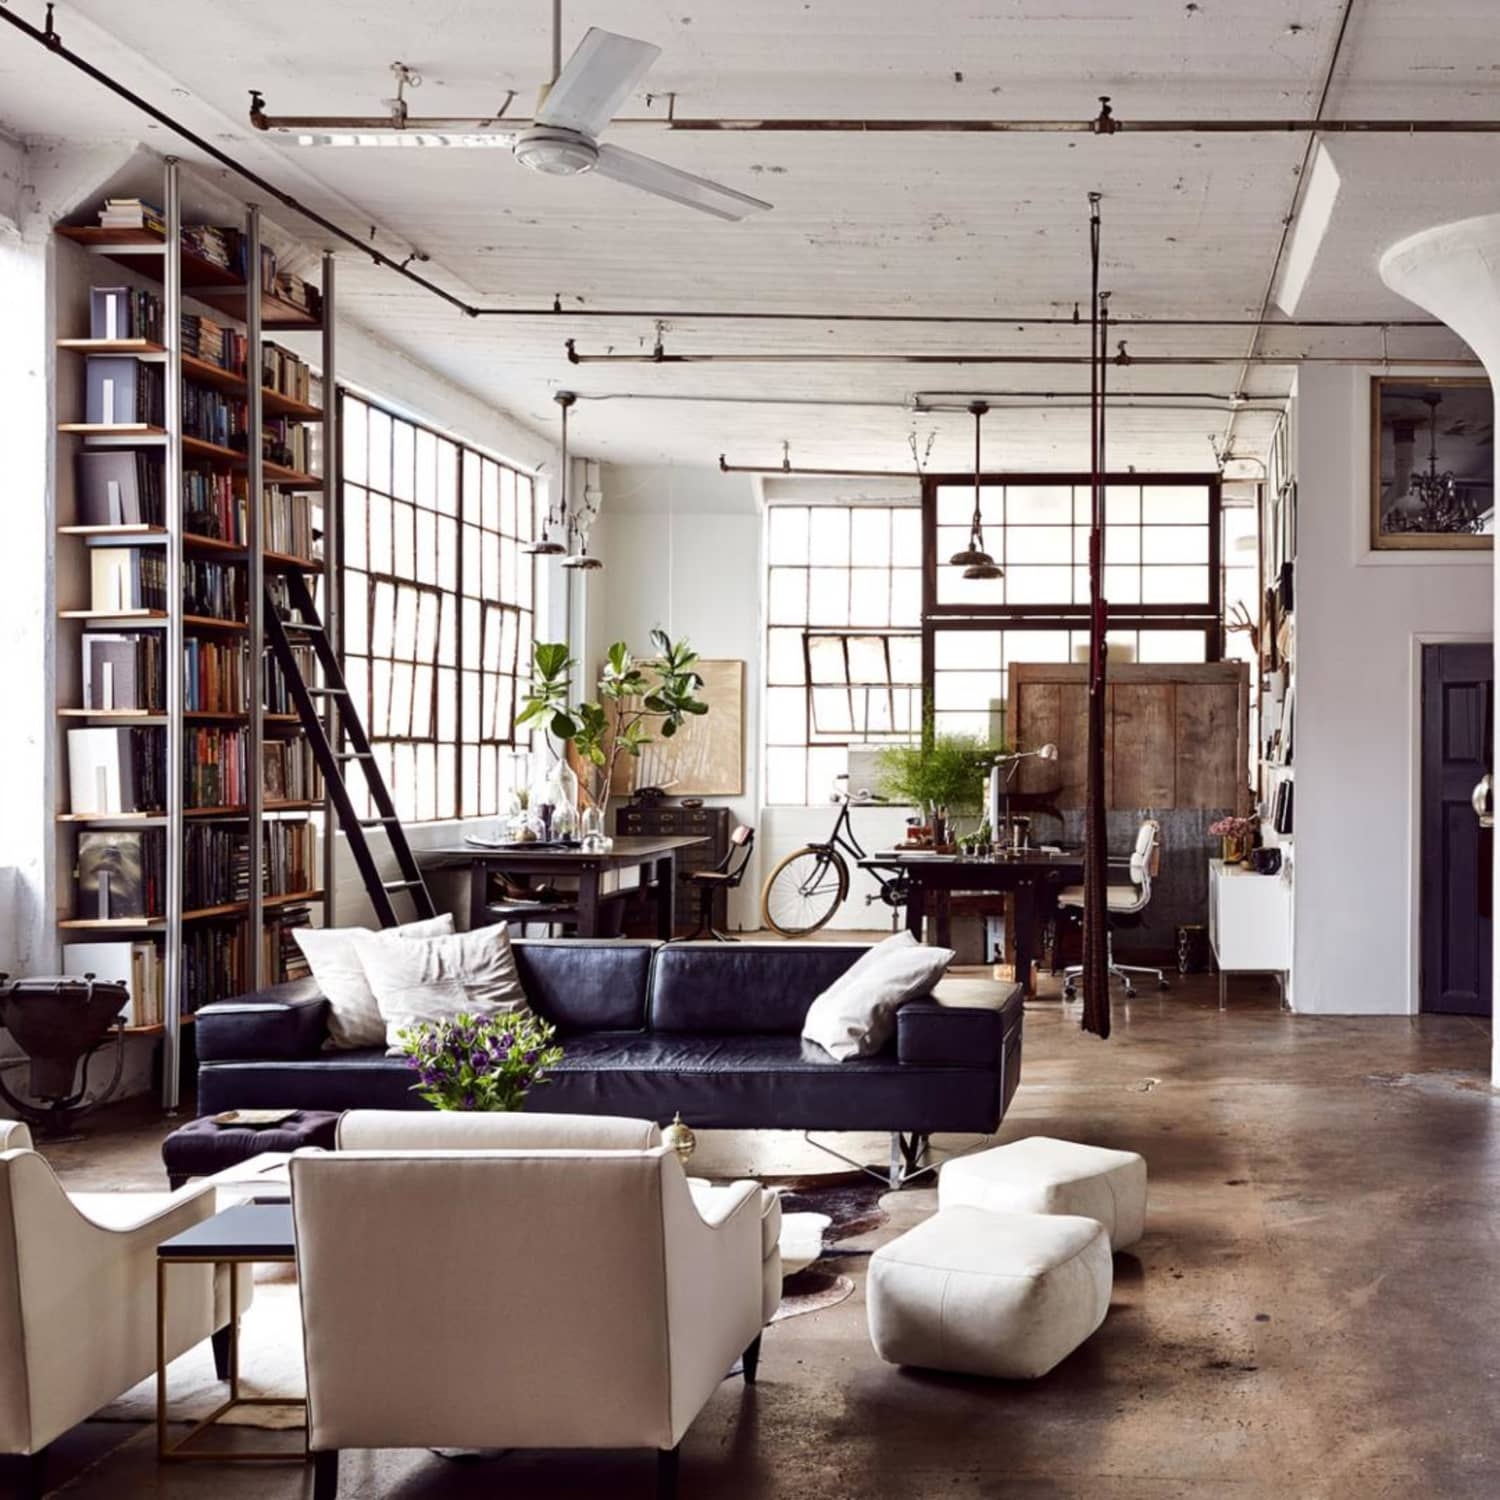 5 Beautiful New York Lofts to Dream About | Apartment Therapy